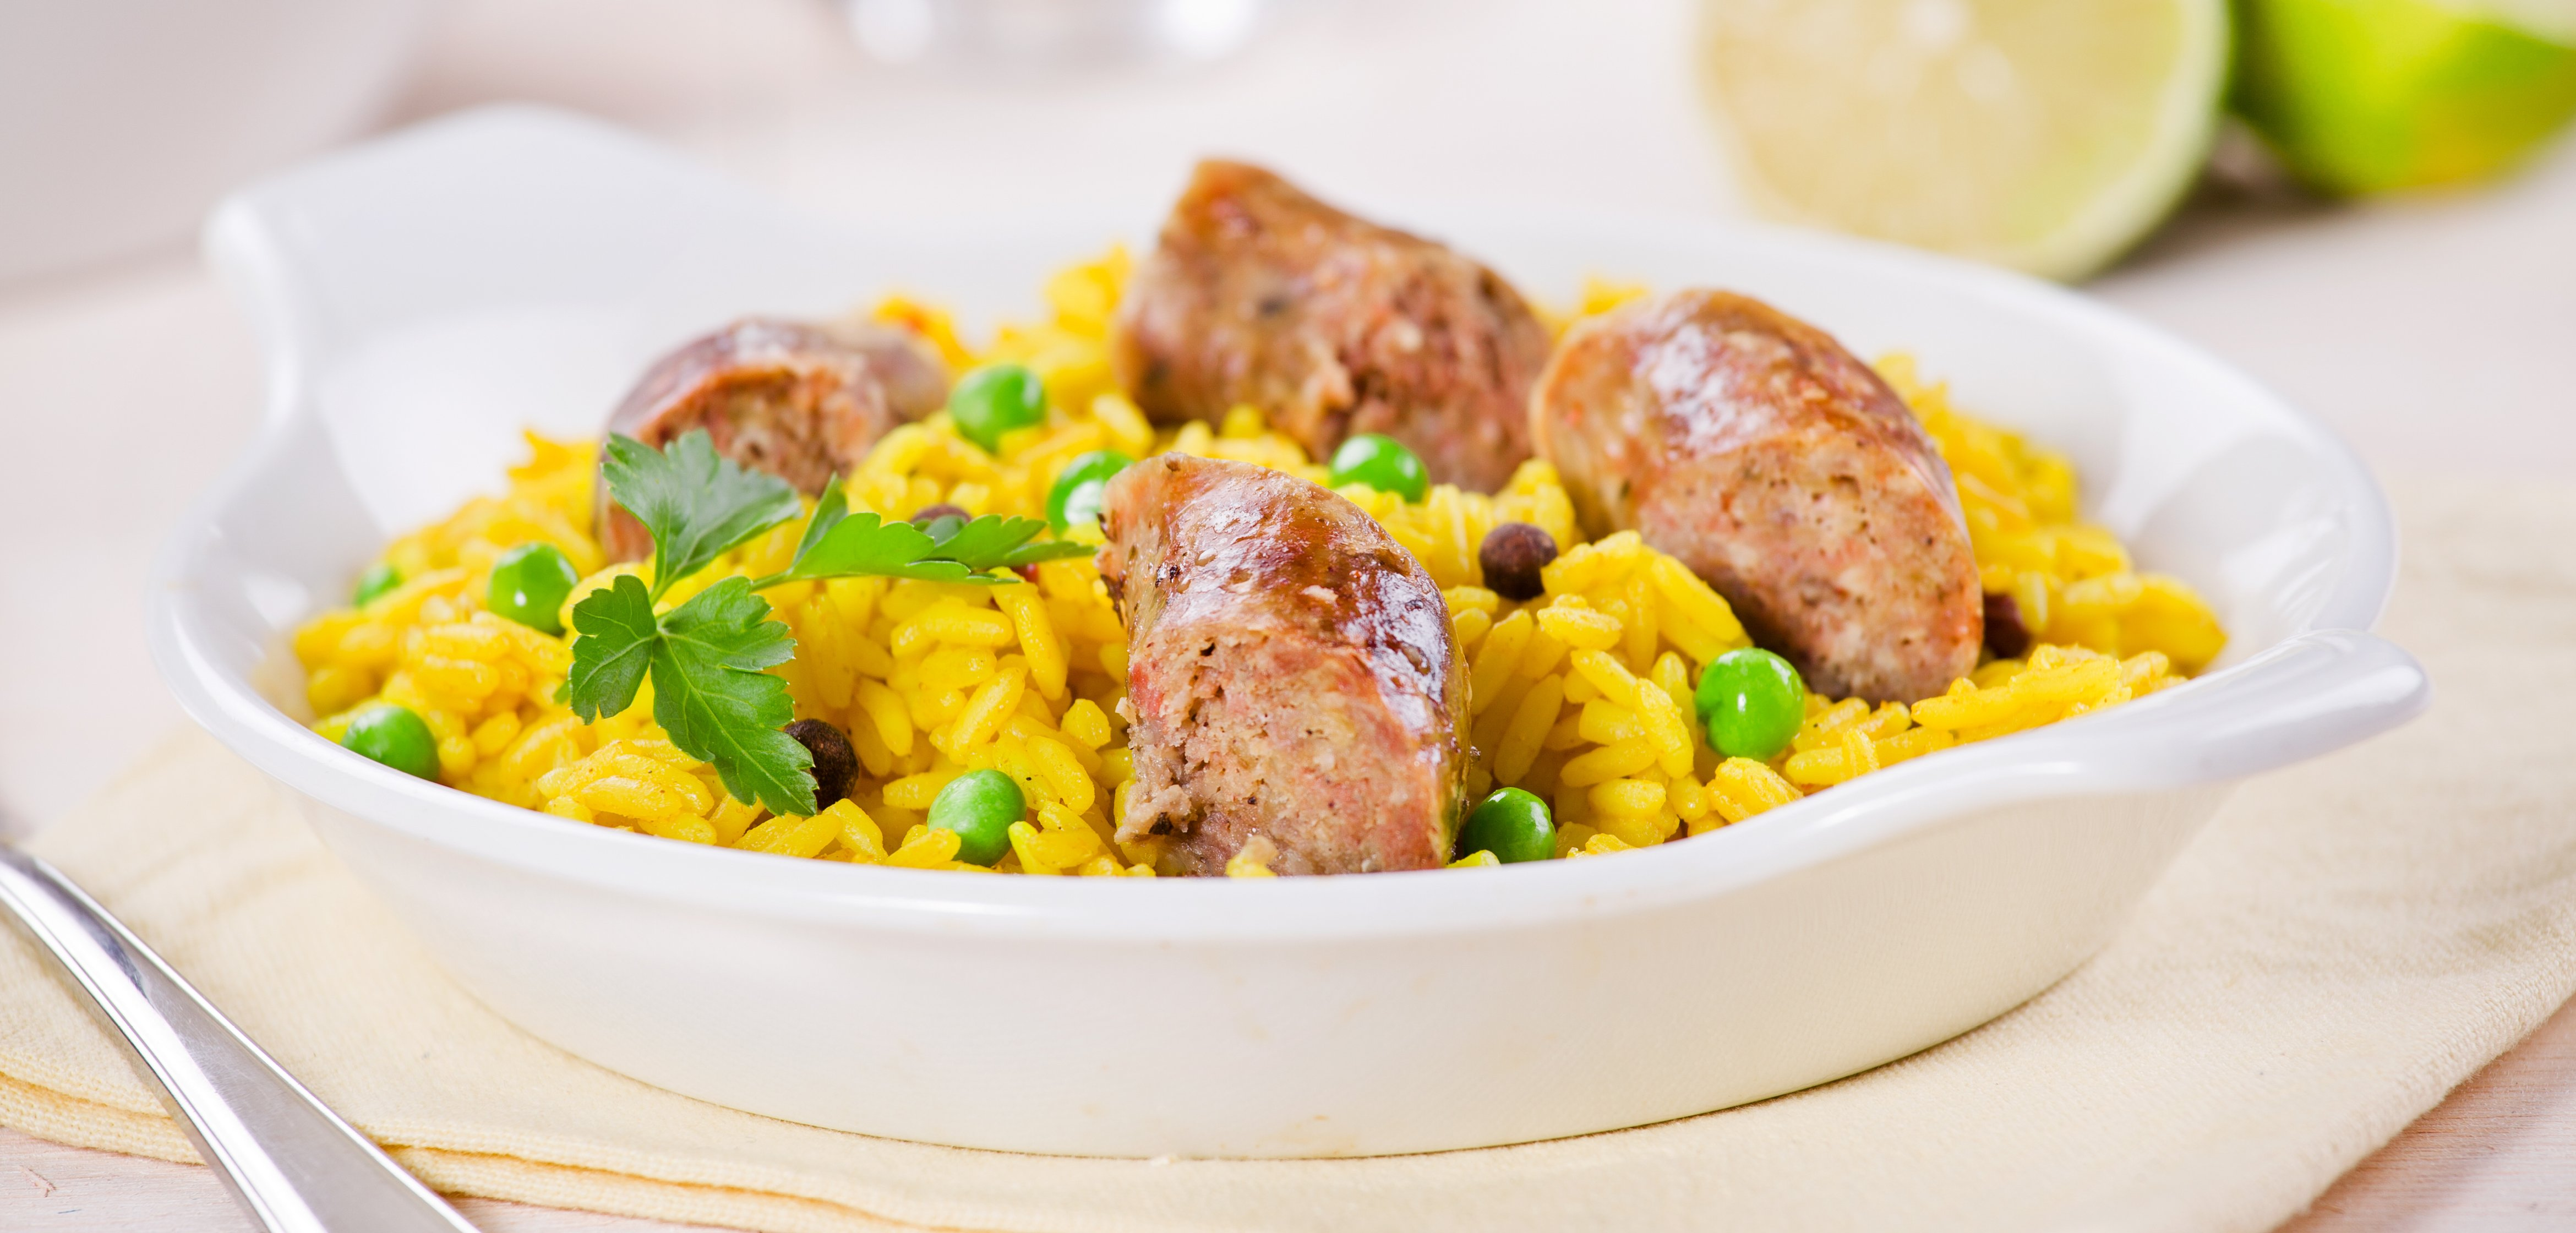 CURRIED SAUSAGES & RICE